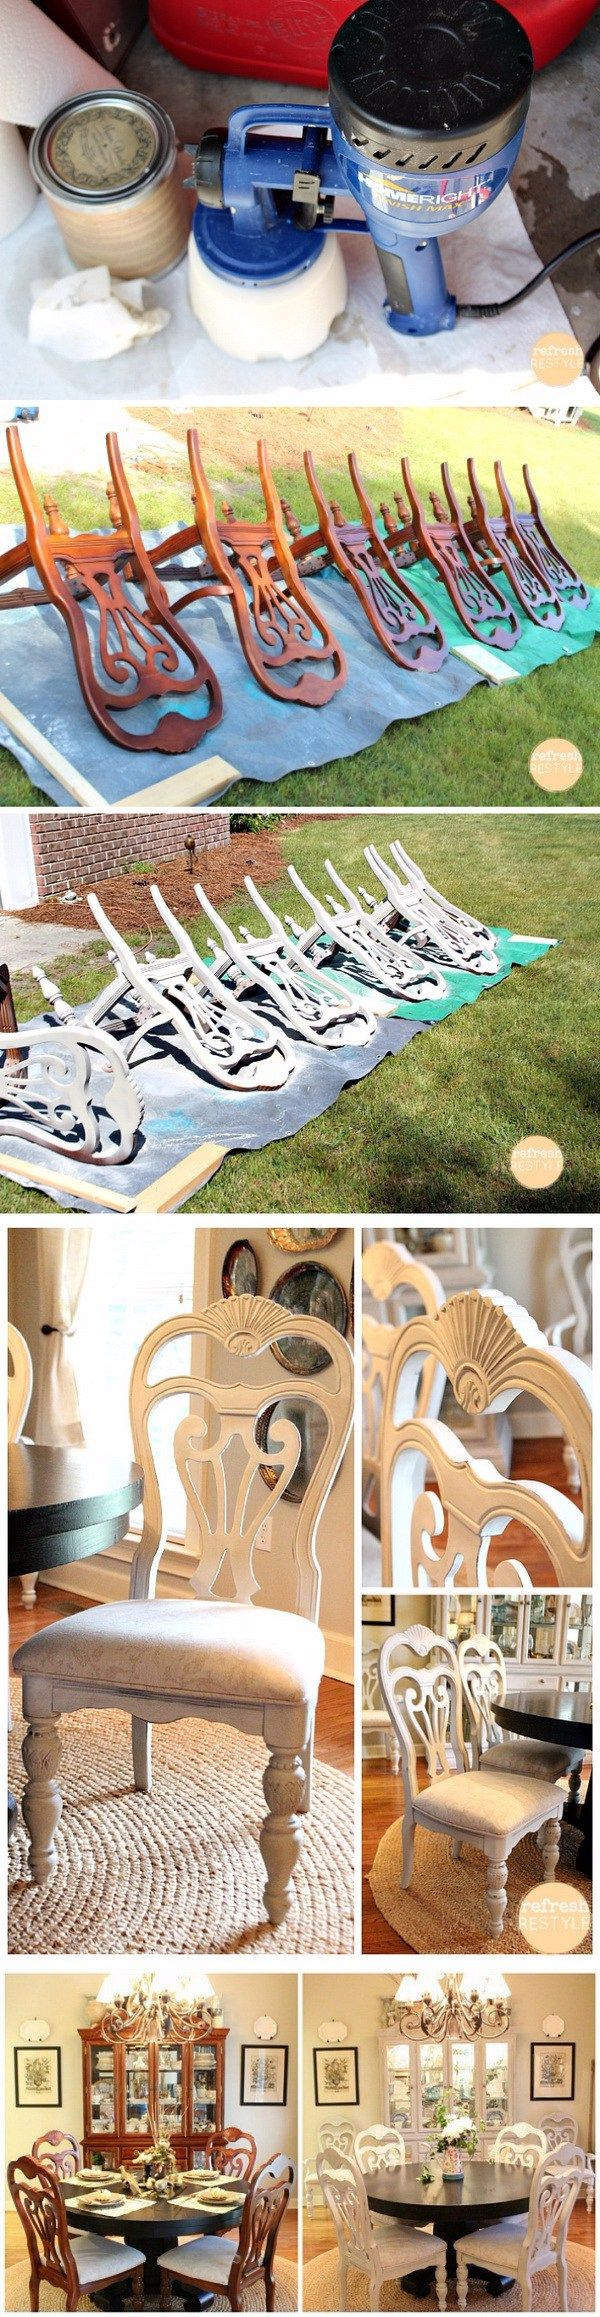 DIY Ideas Of Reusing Old Furniture 5                                                                                                                                                                                 More